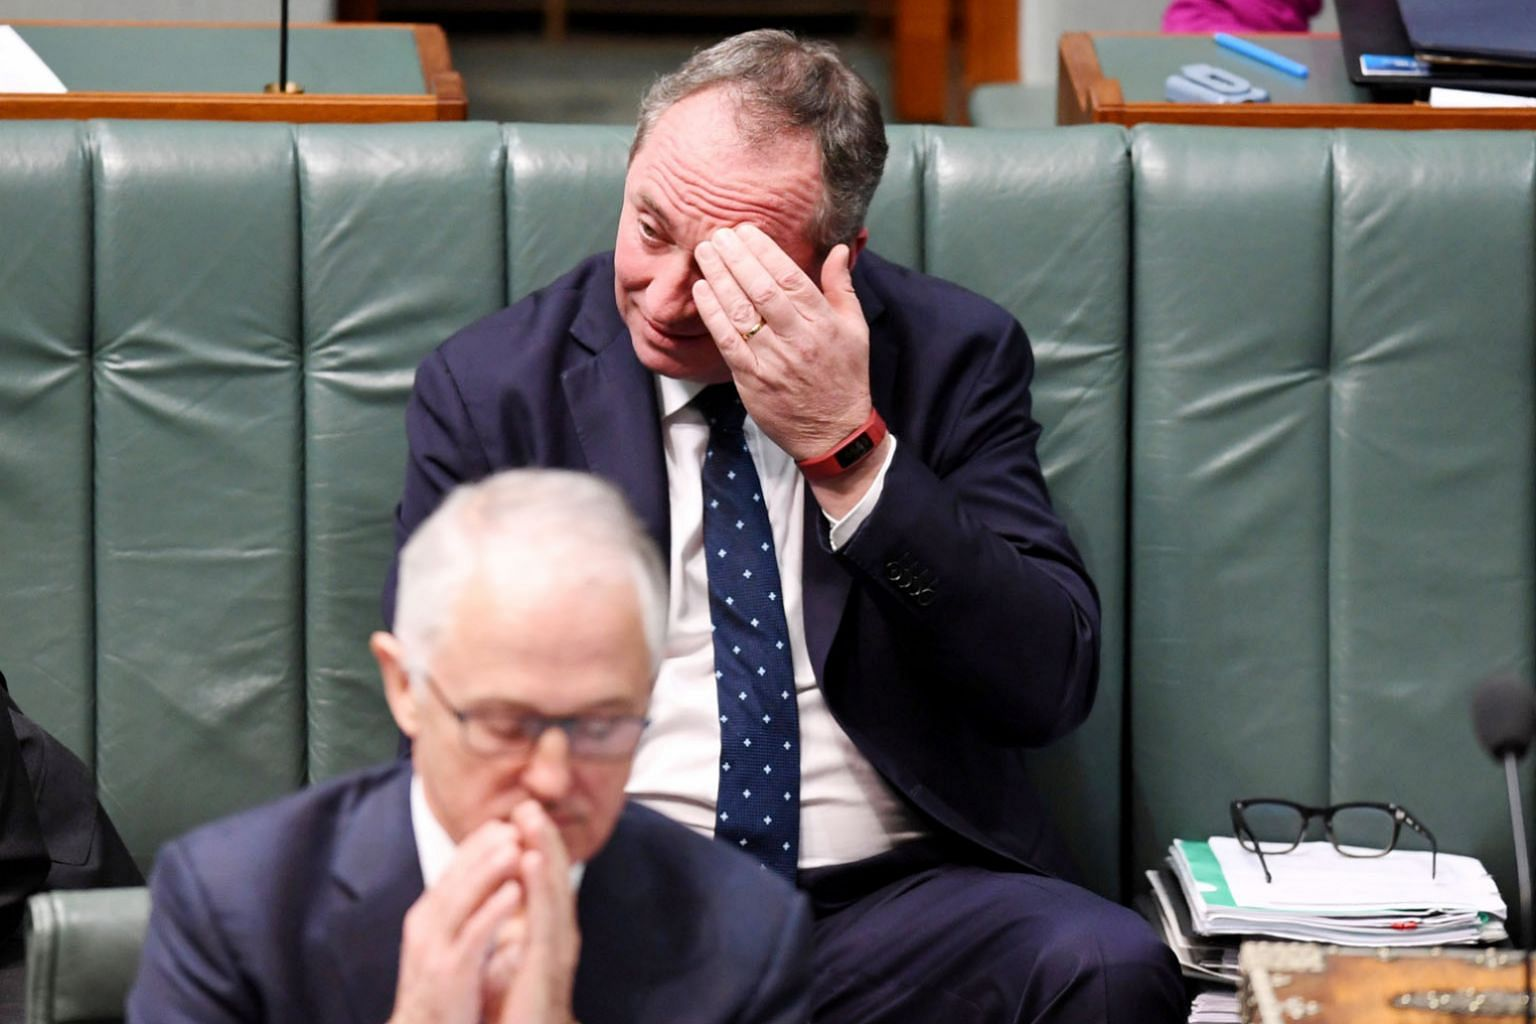 Deputy Prime Minister Barnaby Joyce, with Prime Minister Malcolm Turnbull, at Parliament House in Canberra in August. Mr Joyce, the National Party leader, faces a High Court decision on whether he was ineligible to be elected at the last polls under